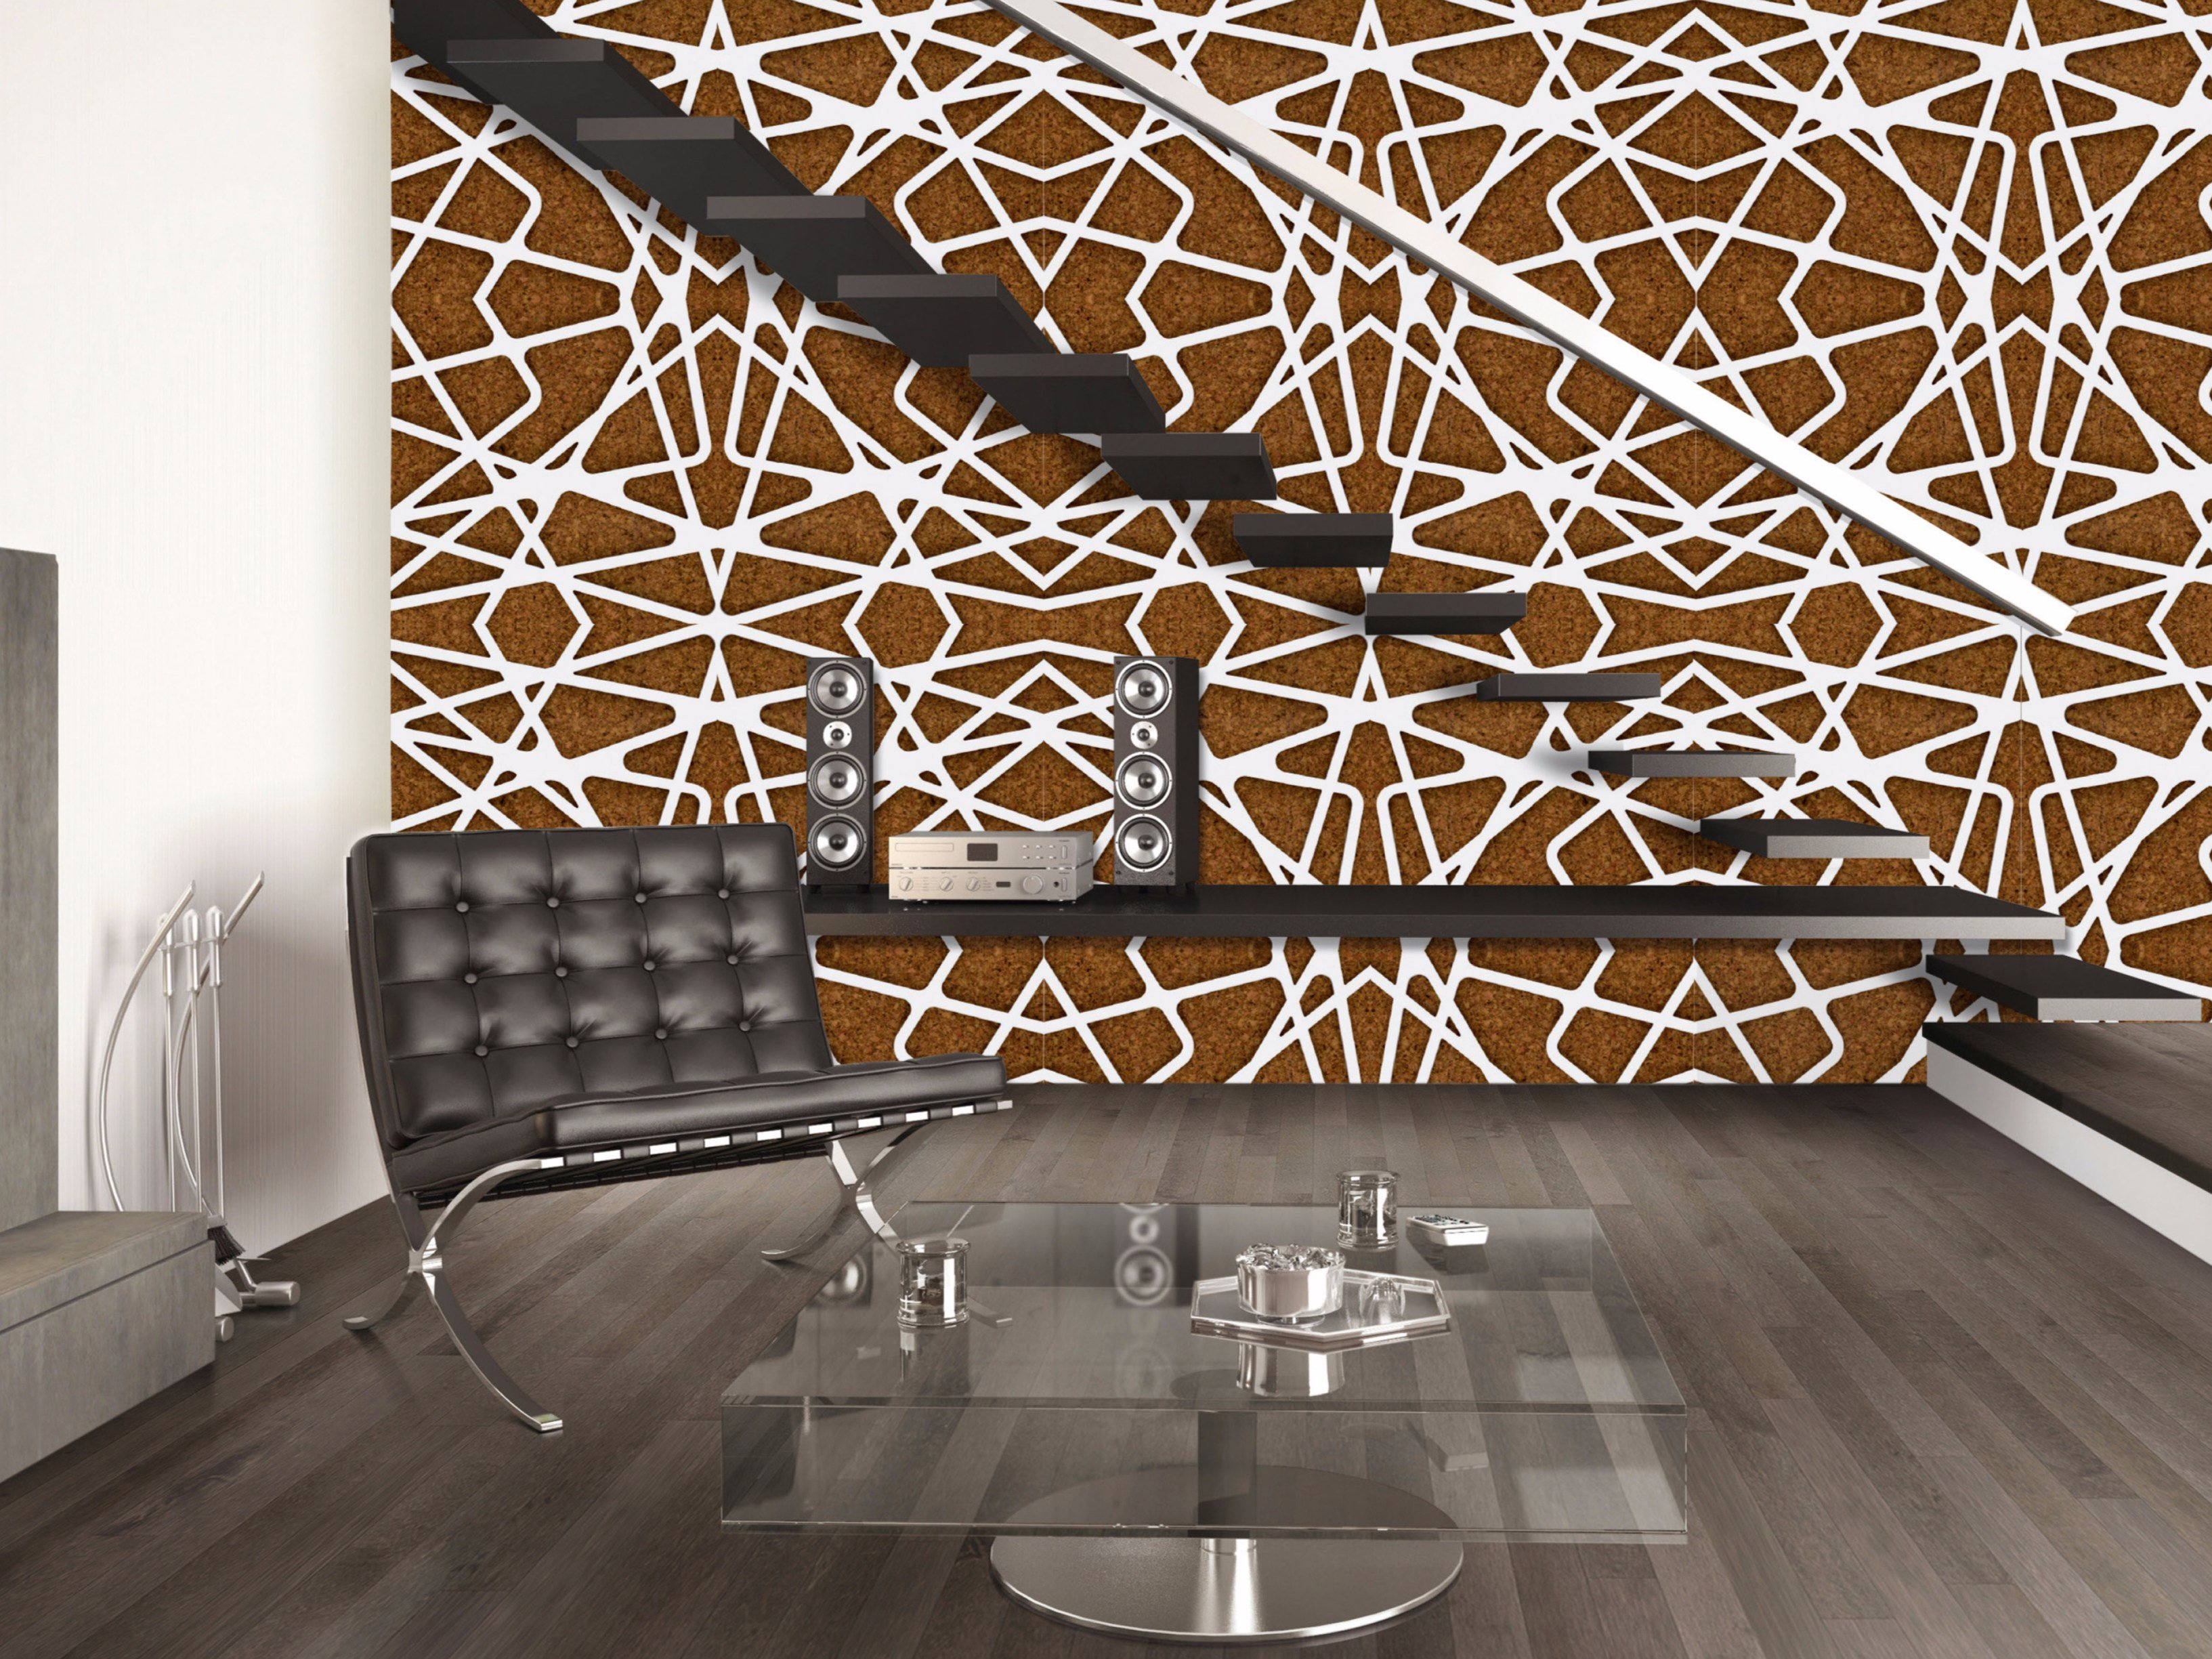 Cork wall tiles WALLCOVER by AMA Design